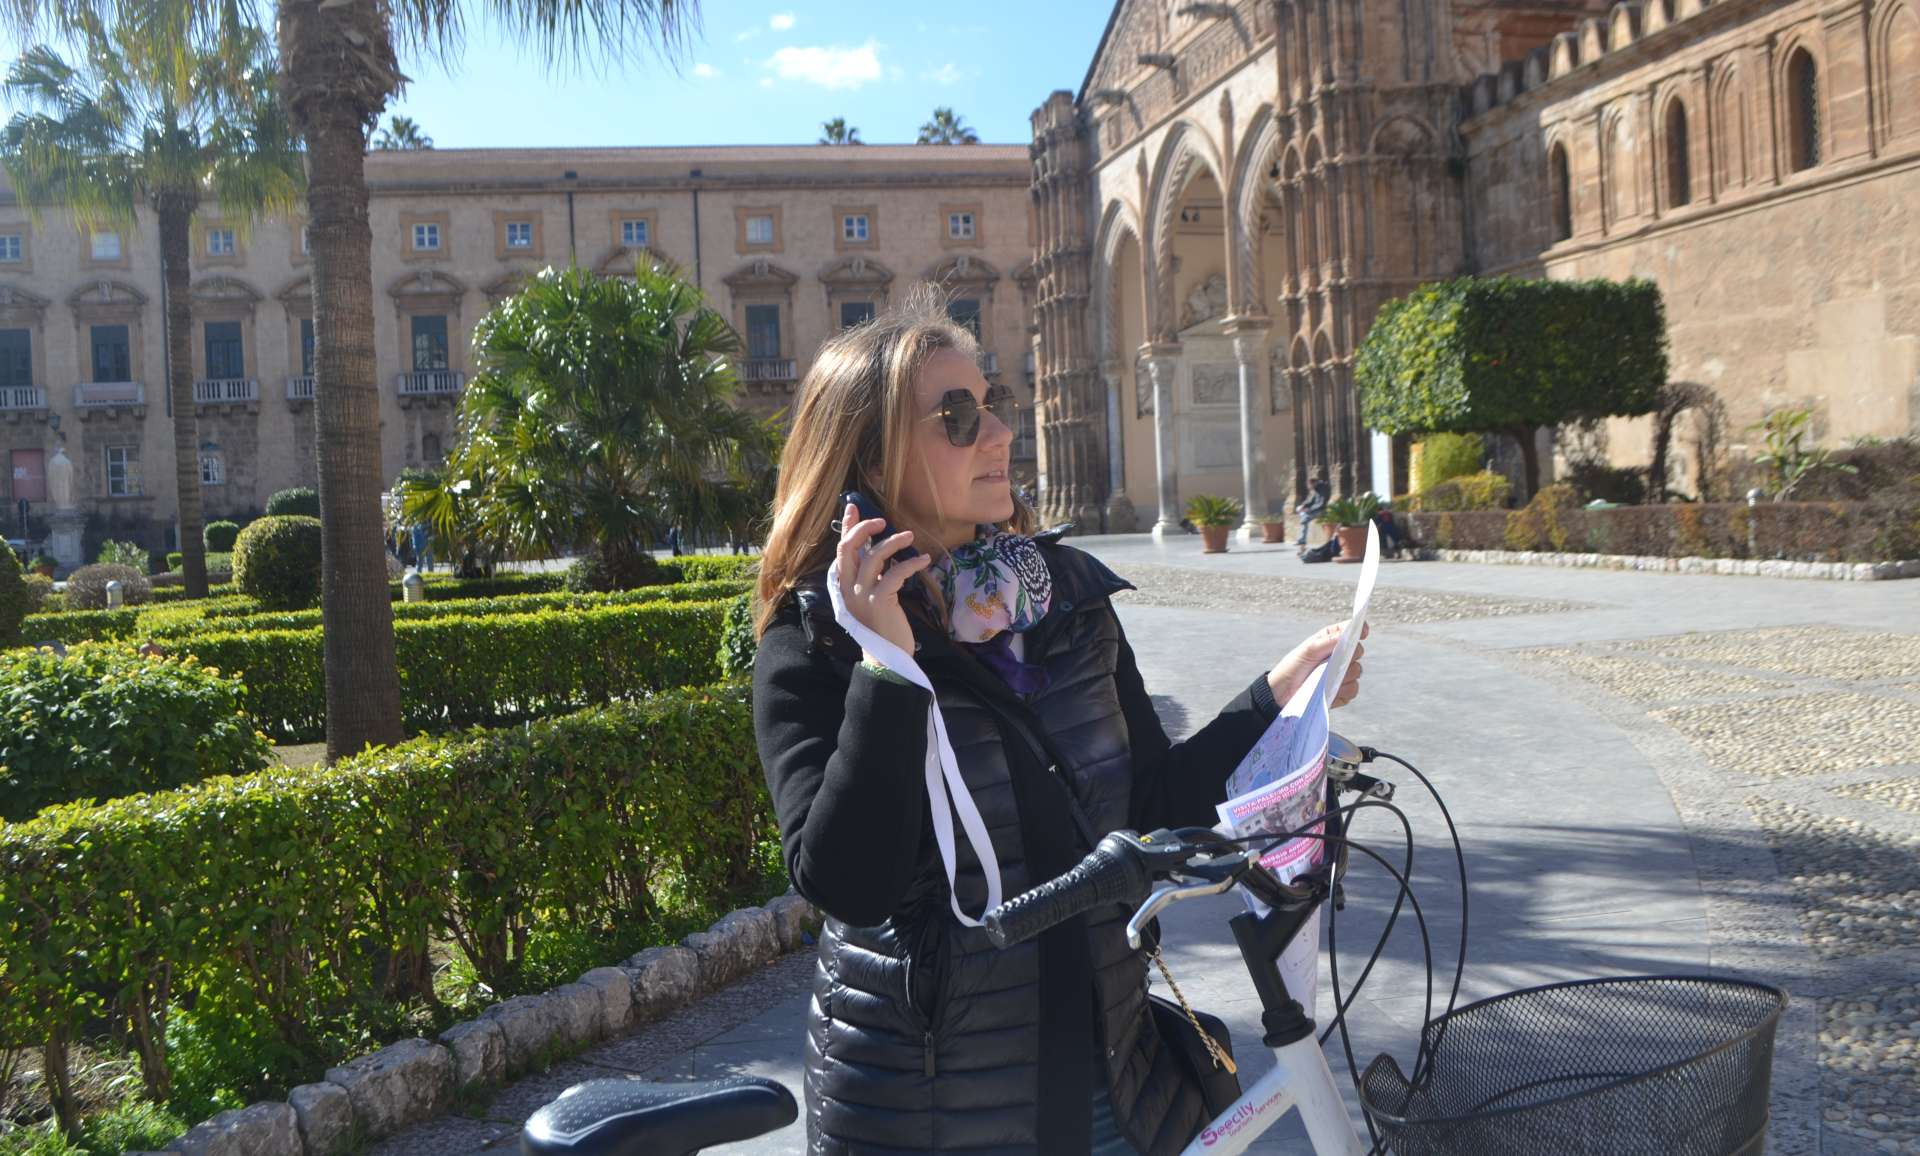 Bike tour palermo